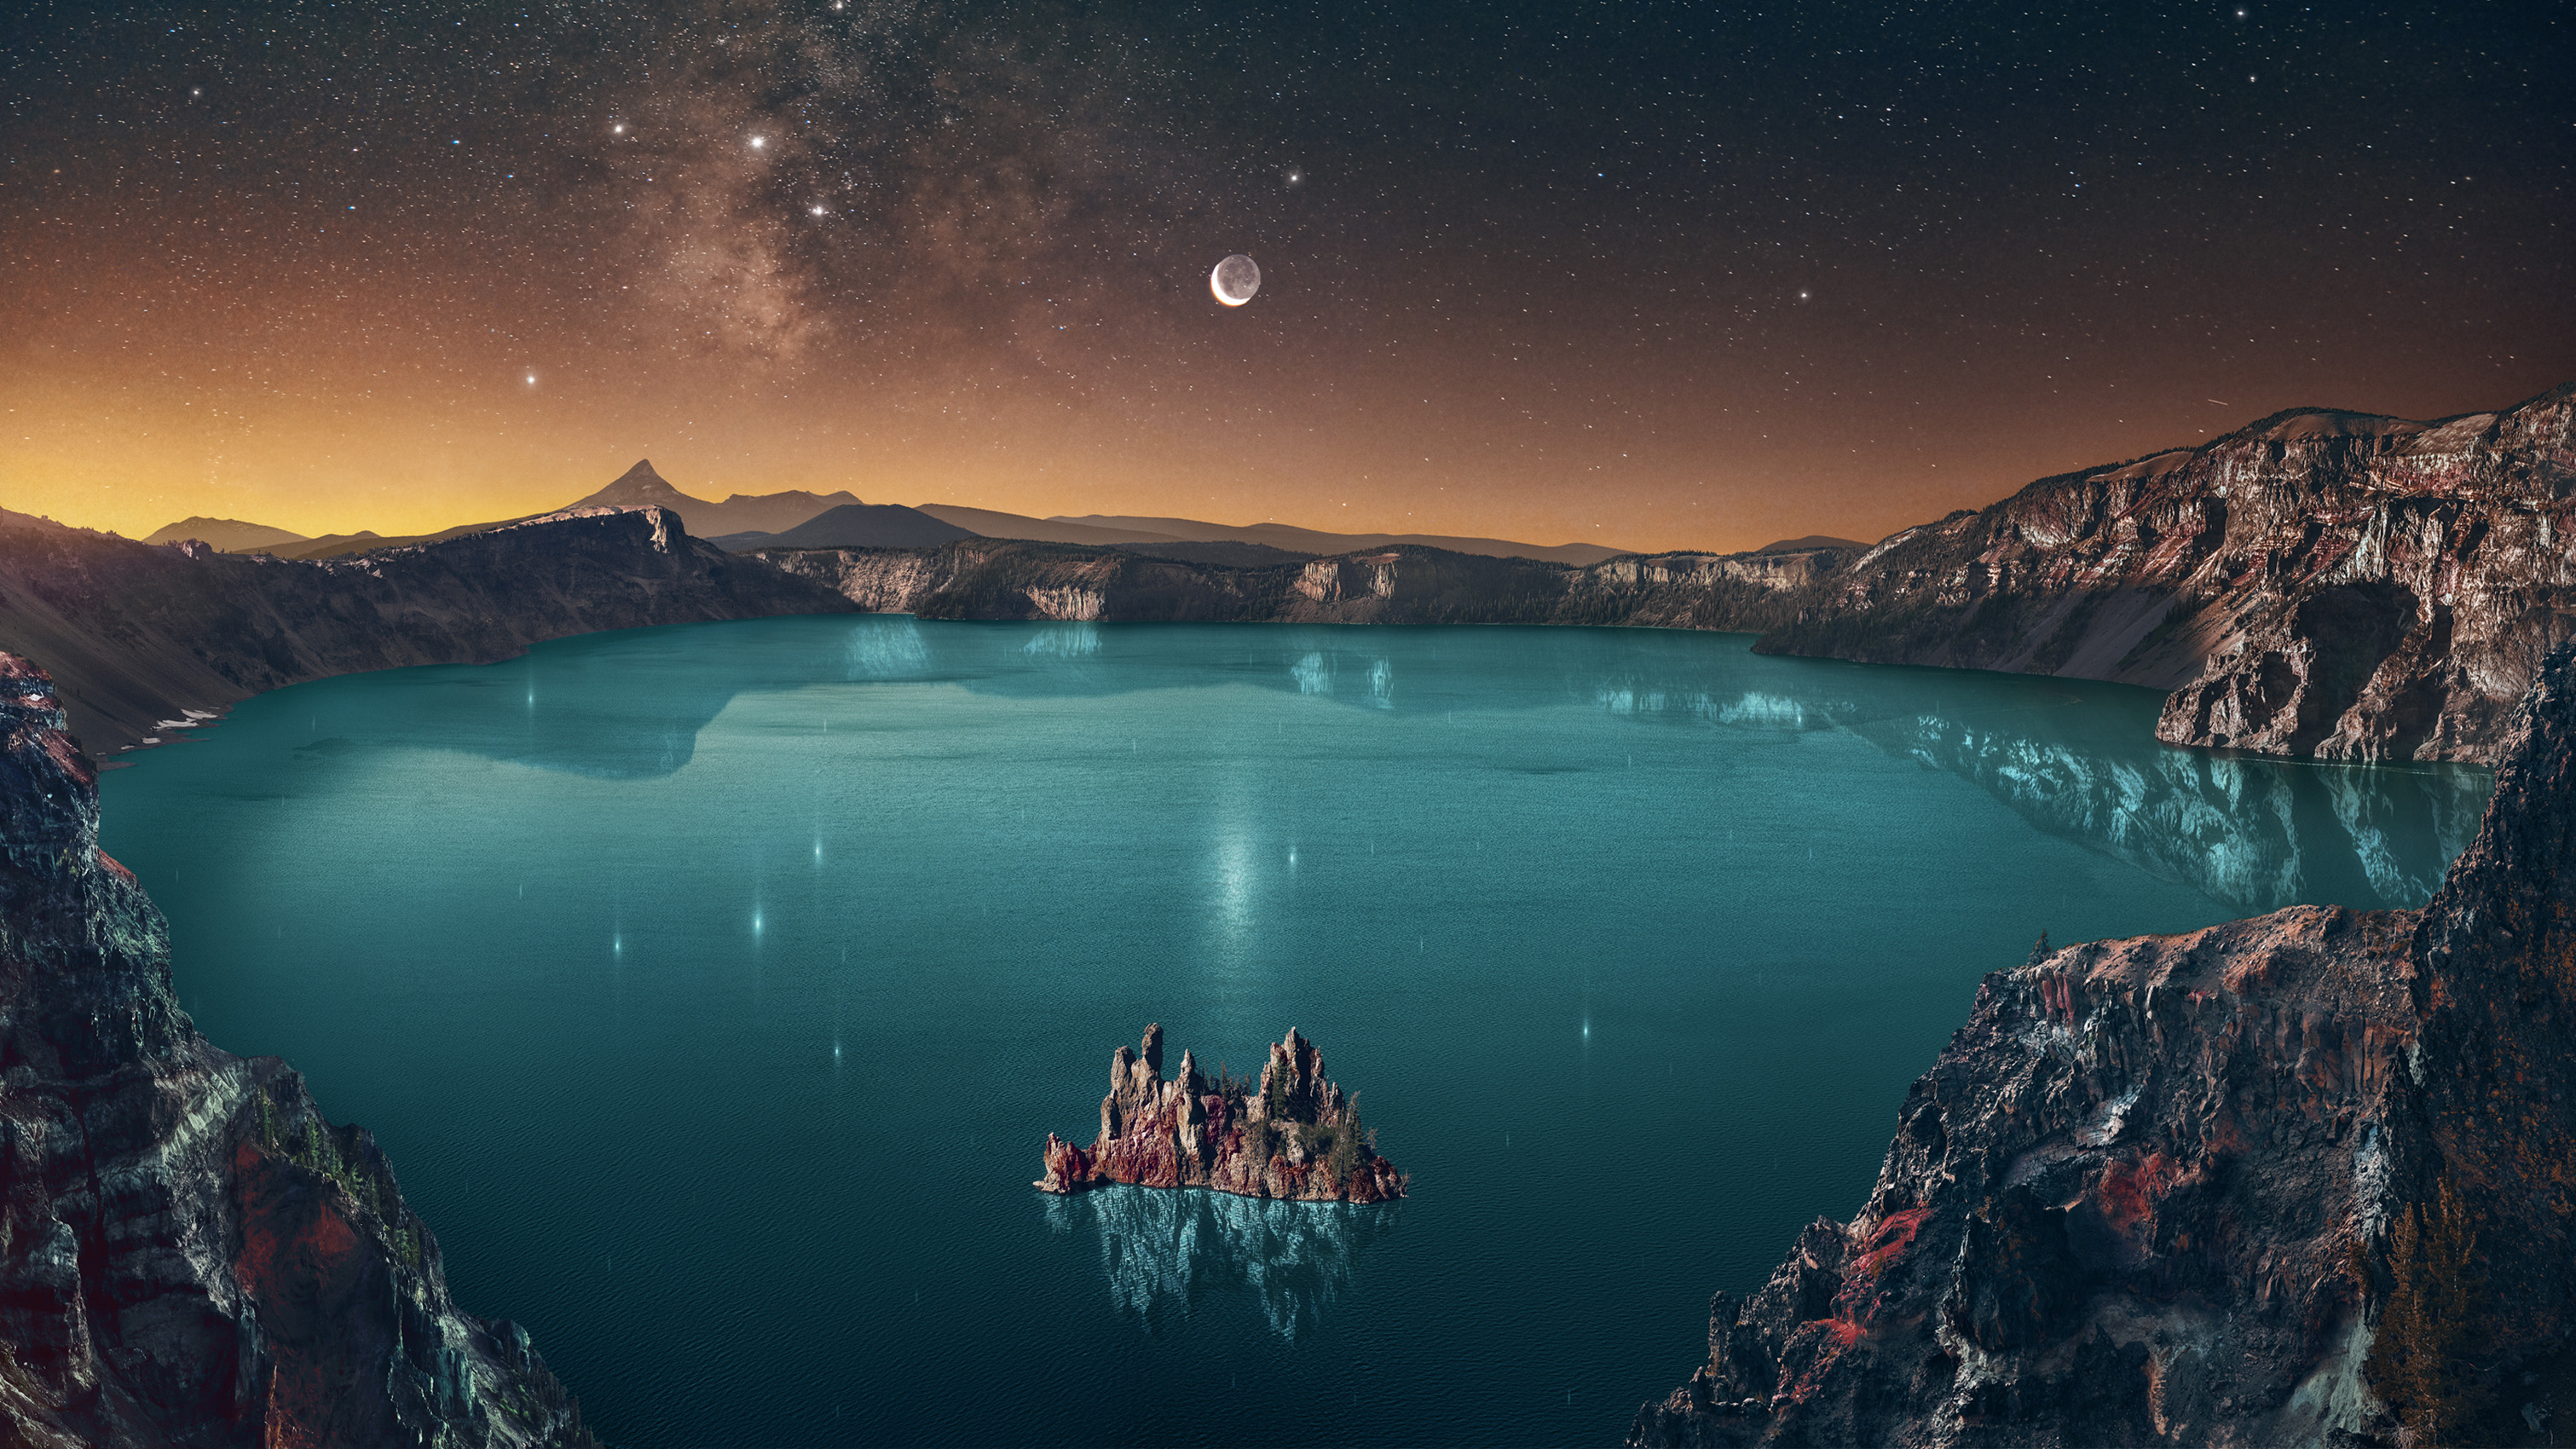 Crater_Lake_w03h_OW5c_RGB